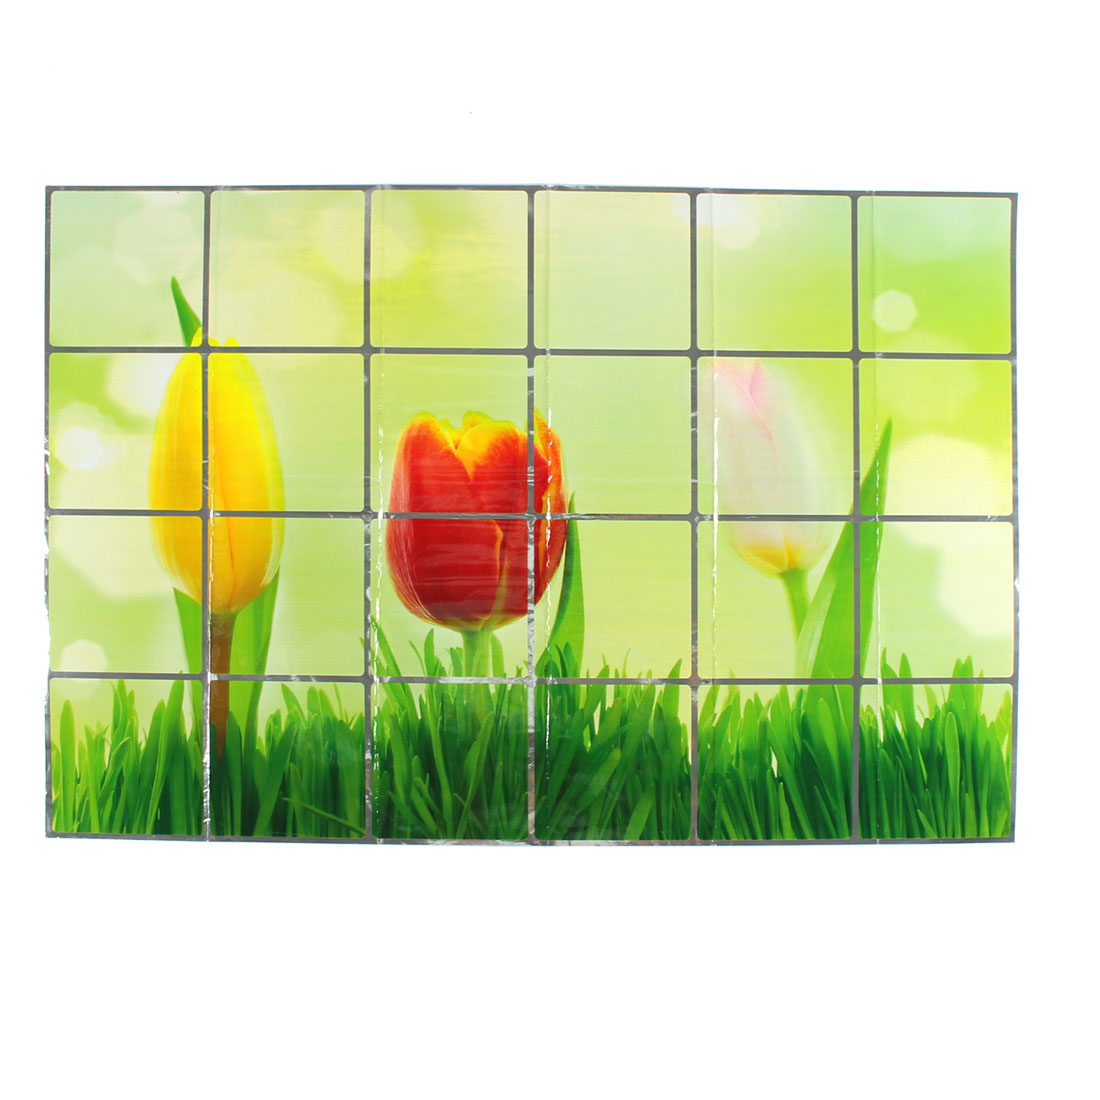 Kitchen Tulip Printed Removable Self-adhesive Oilproof Wall Window Sticker 90 x 60cm